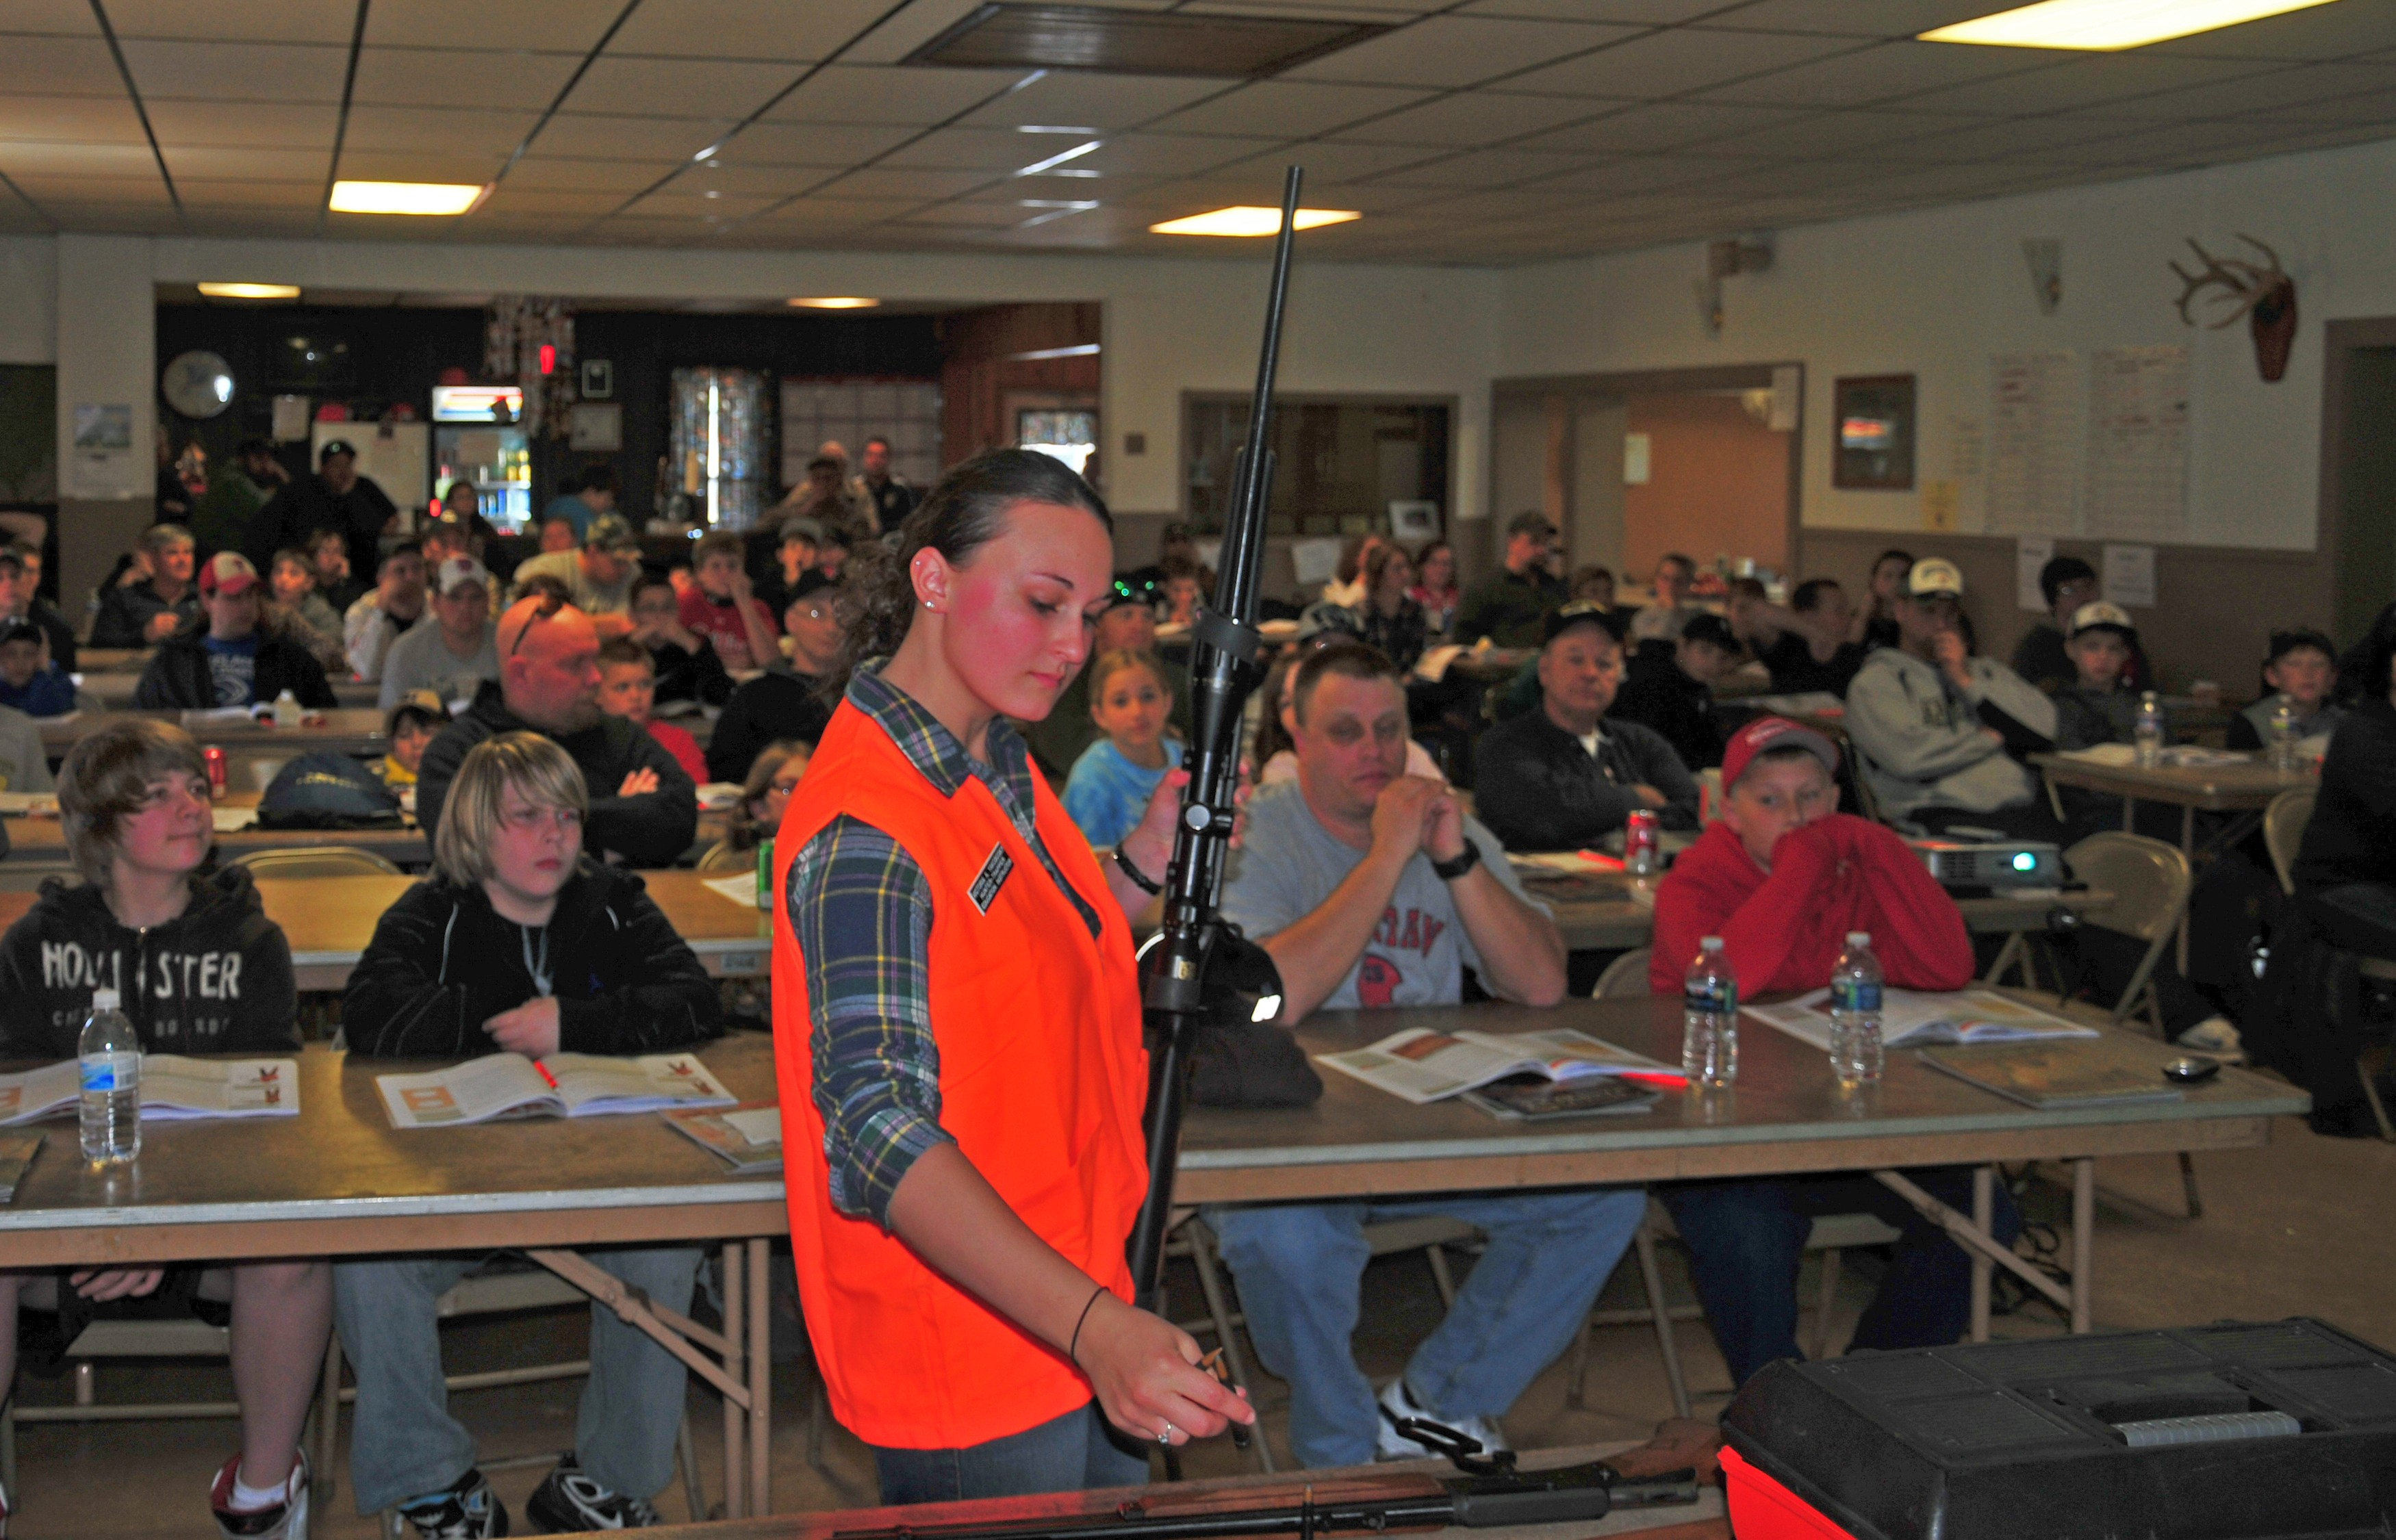 Much can be taught about hunter education in school classrooms, including gun safety.